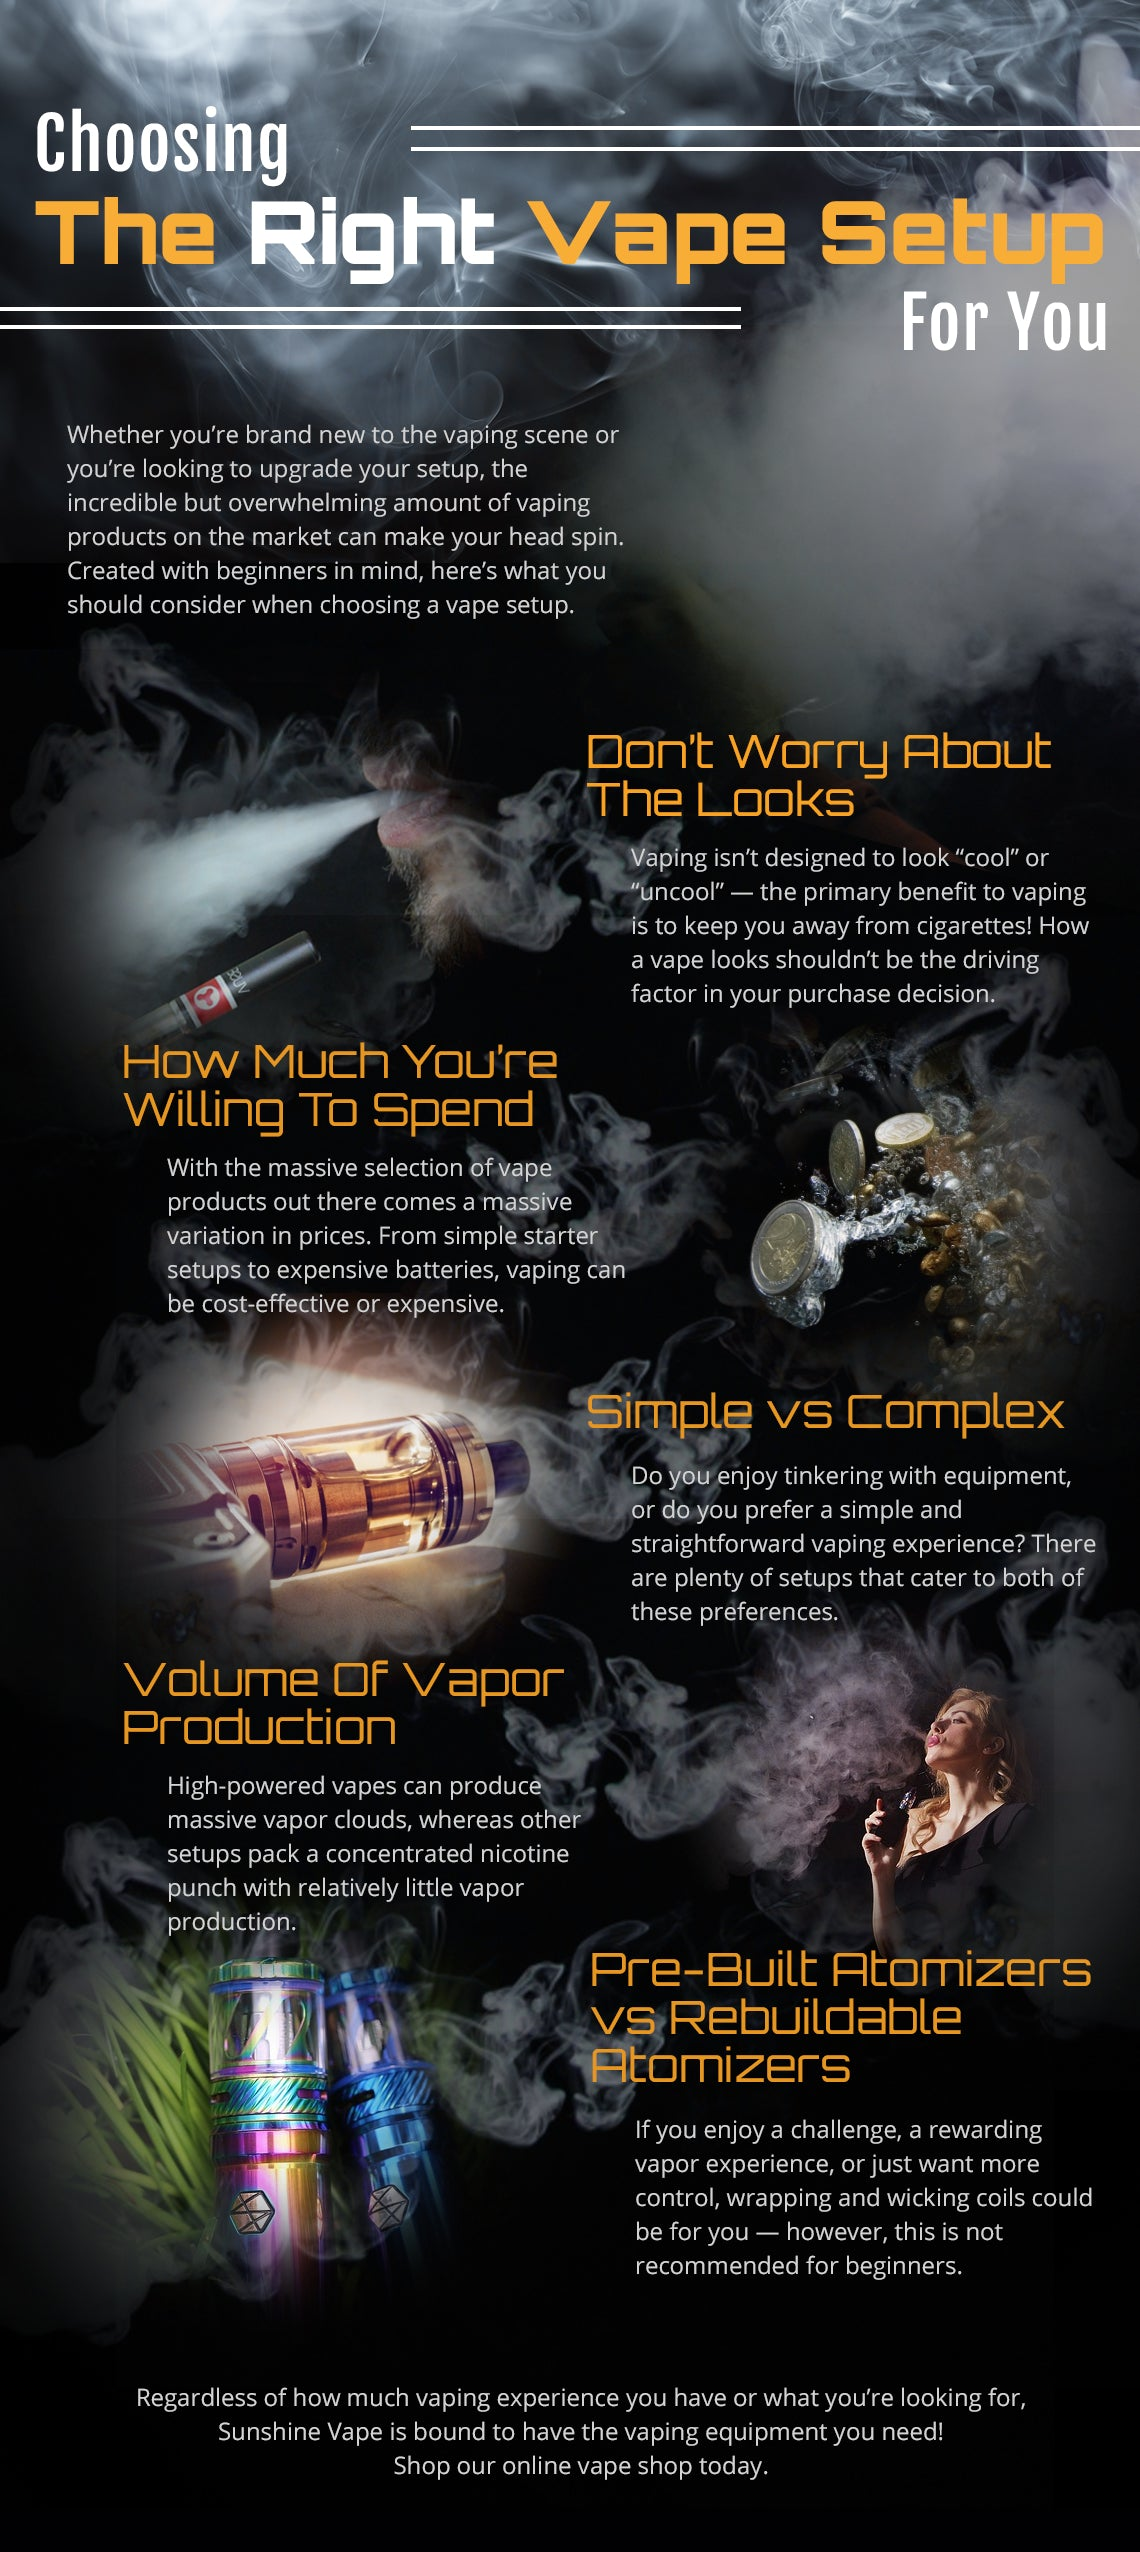 73e14725e8 The Latest News From Our Vape Supply Shop - Check Out Our Blog ...